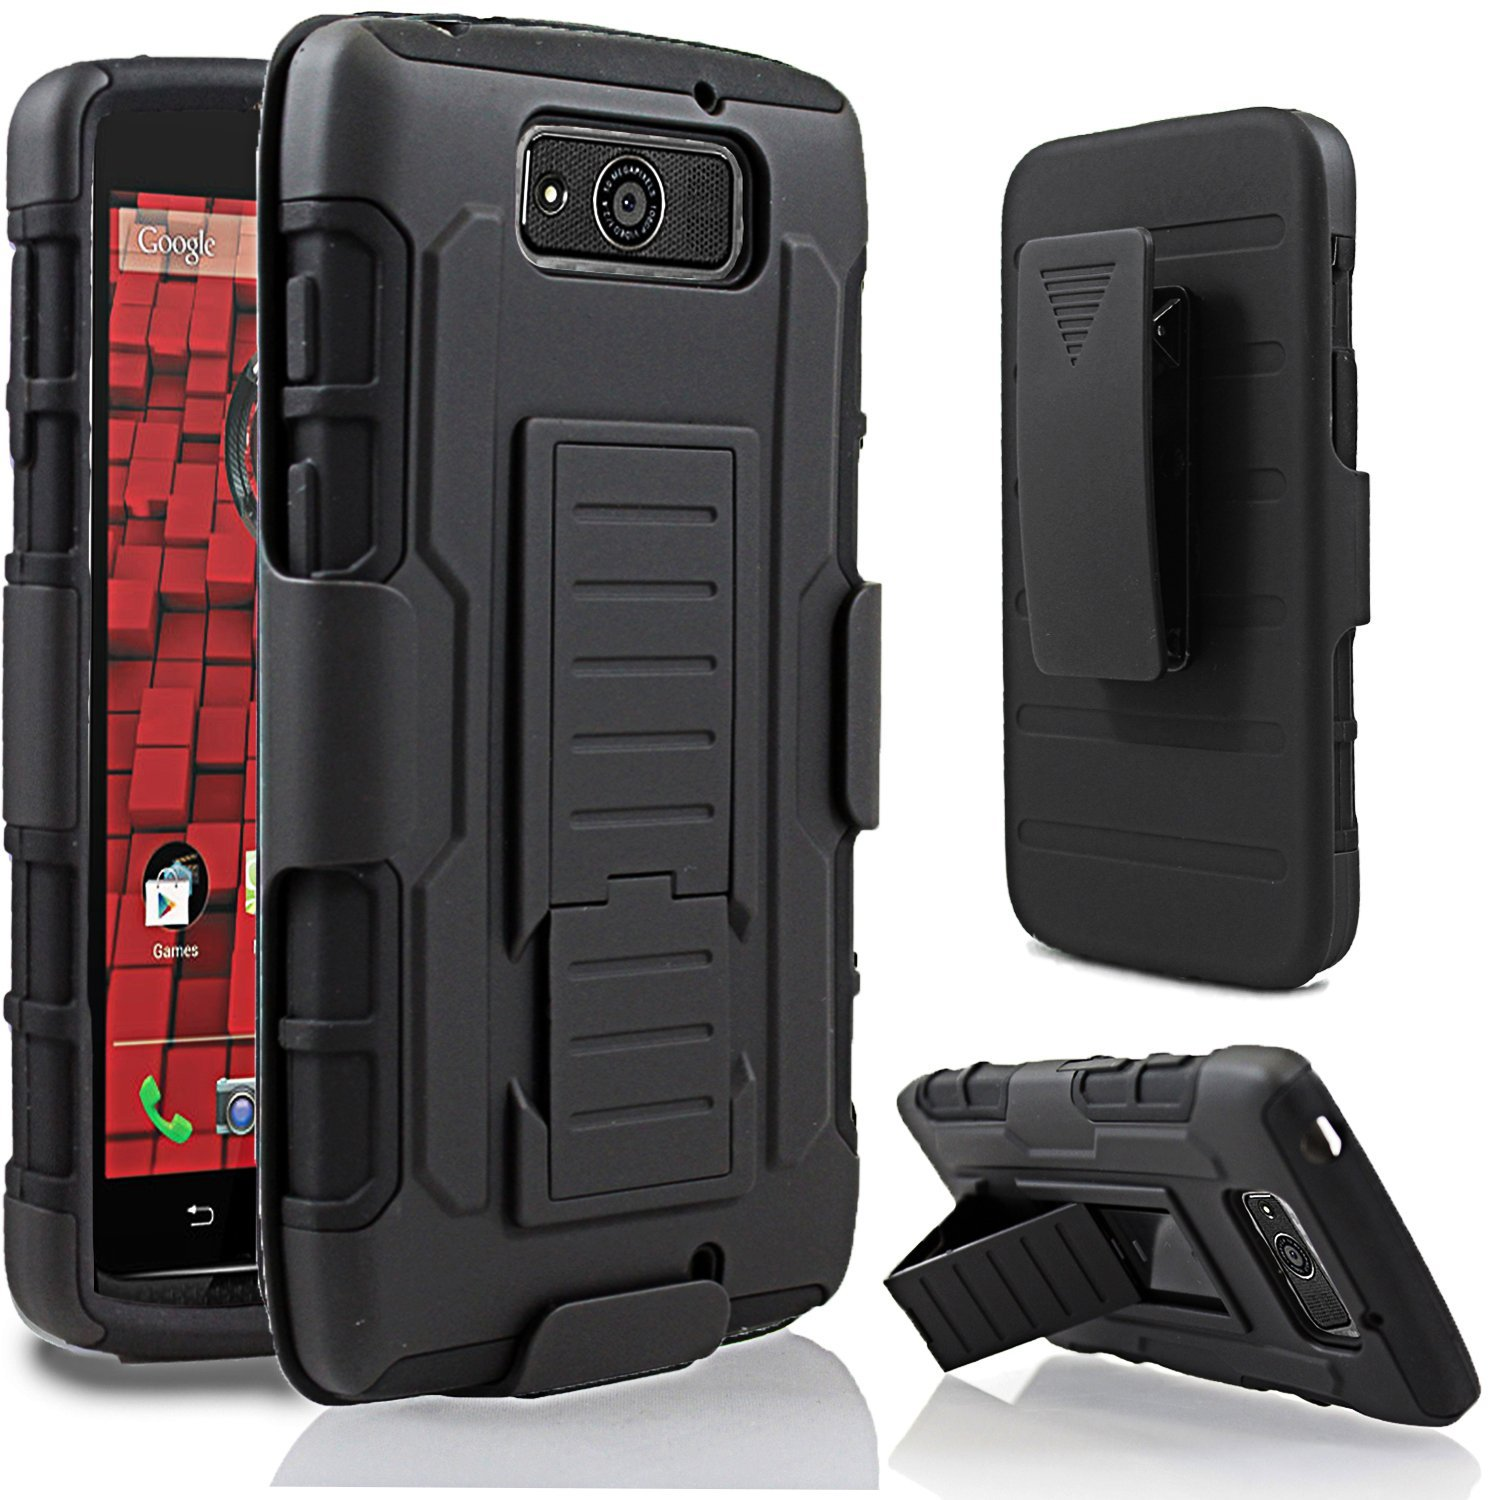 best loved 24d78 1c7e1 US $4.28 |Protective Armor Impact Hybrid Stand Hard Case Cover+Holster With  Belt Clip For Motorola Droid Ultra/Maxx XT1080m-in Holsters & Clips from ...